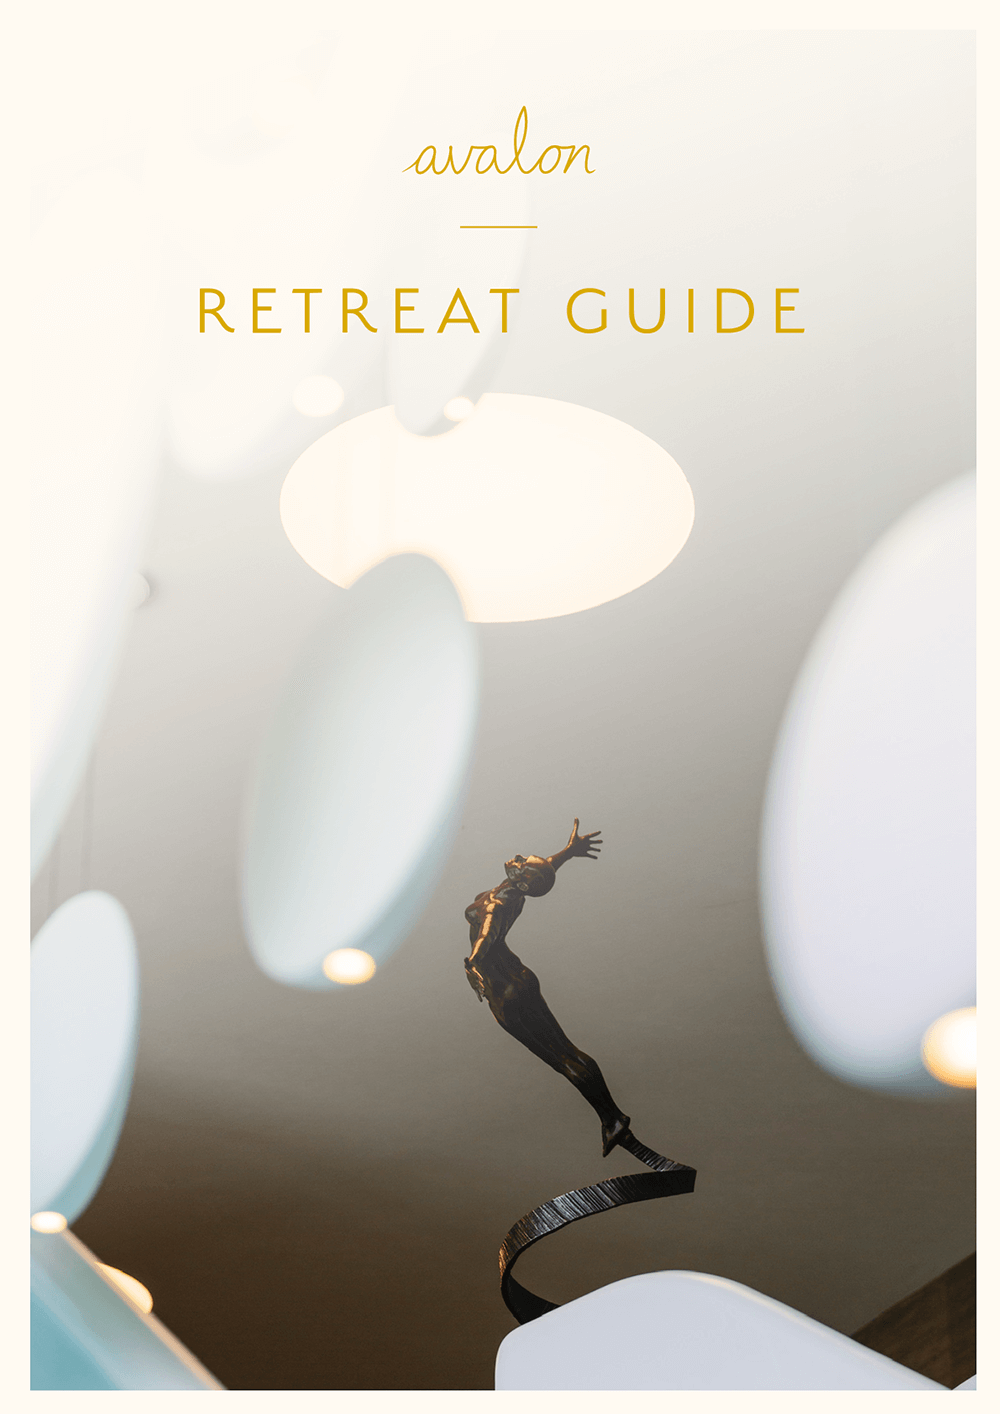 Avalon Retreat Guide PDF Cover